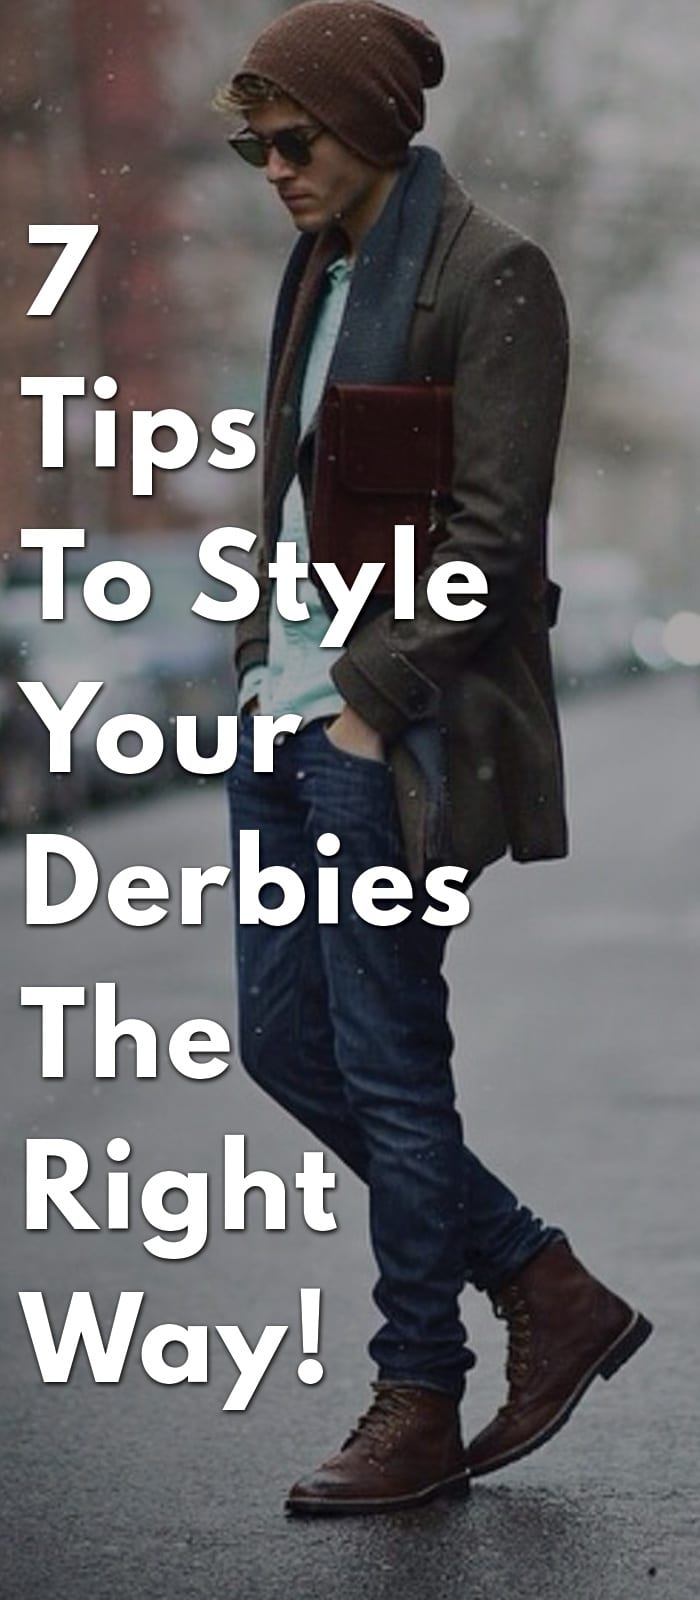 7-Tips-To-Style-Your-Derbies-The-Right-Way!